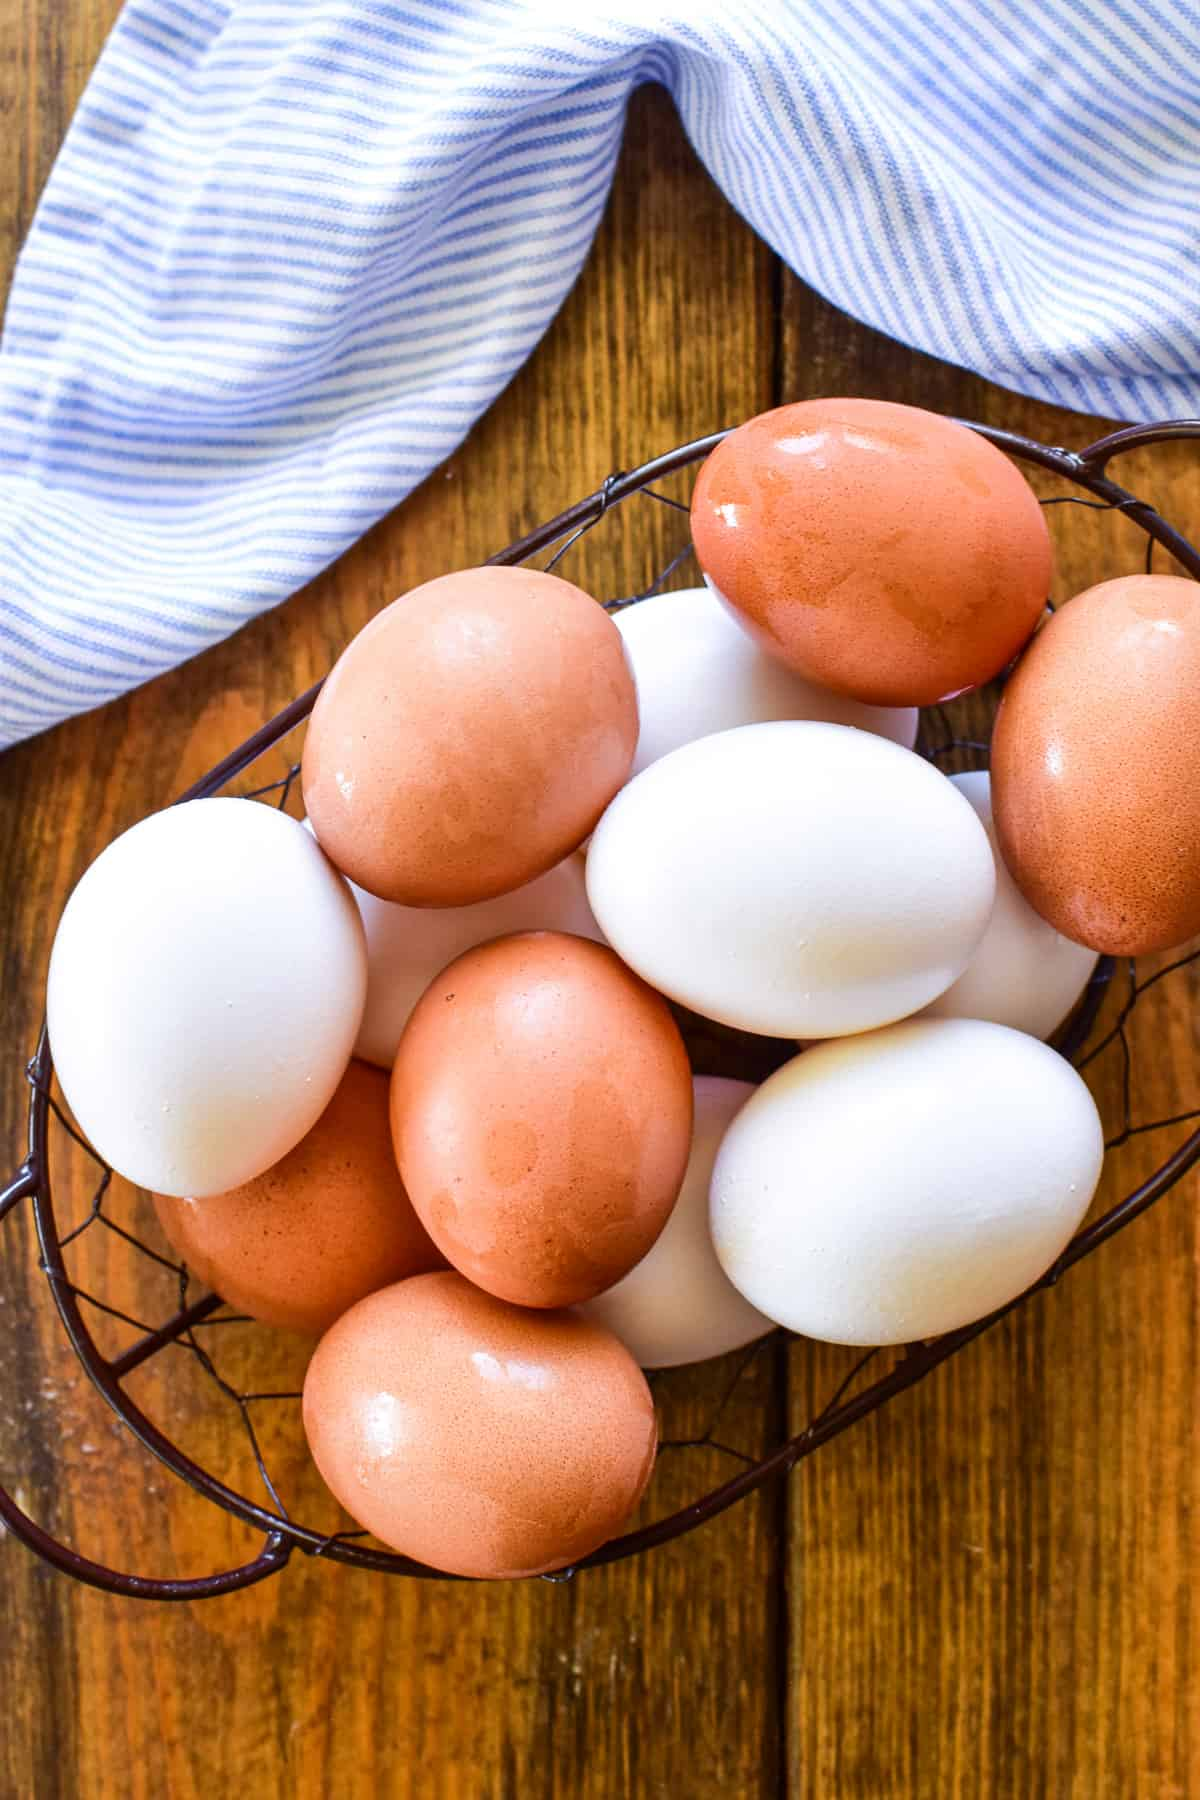 White and brown eggs in a wire basket with a blue and white striped napkin